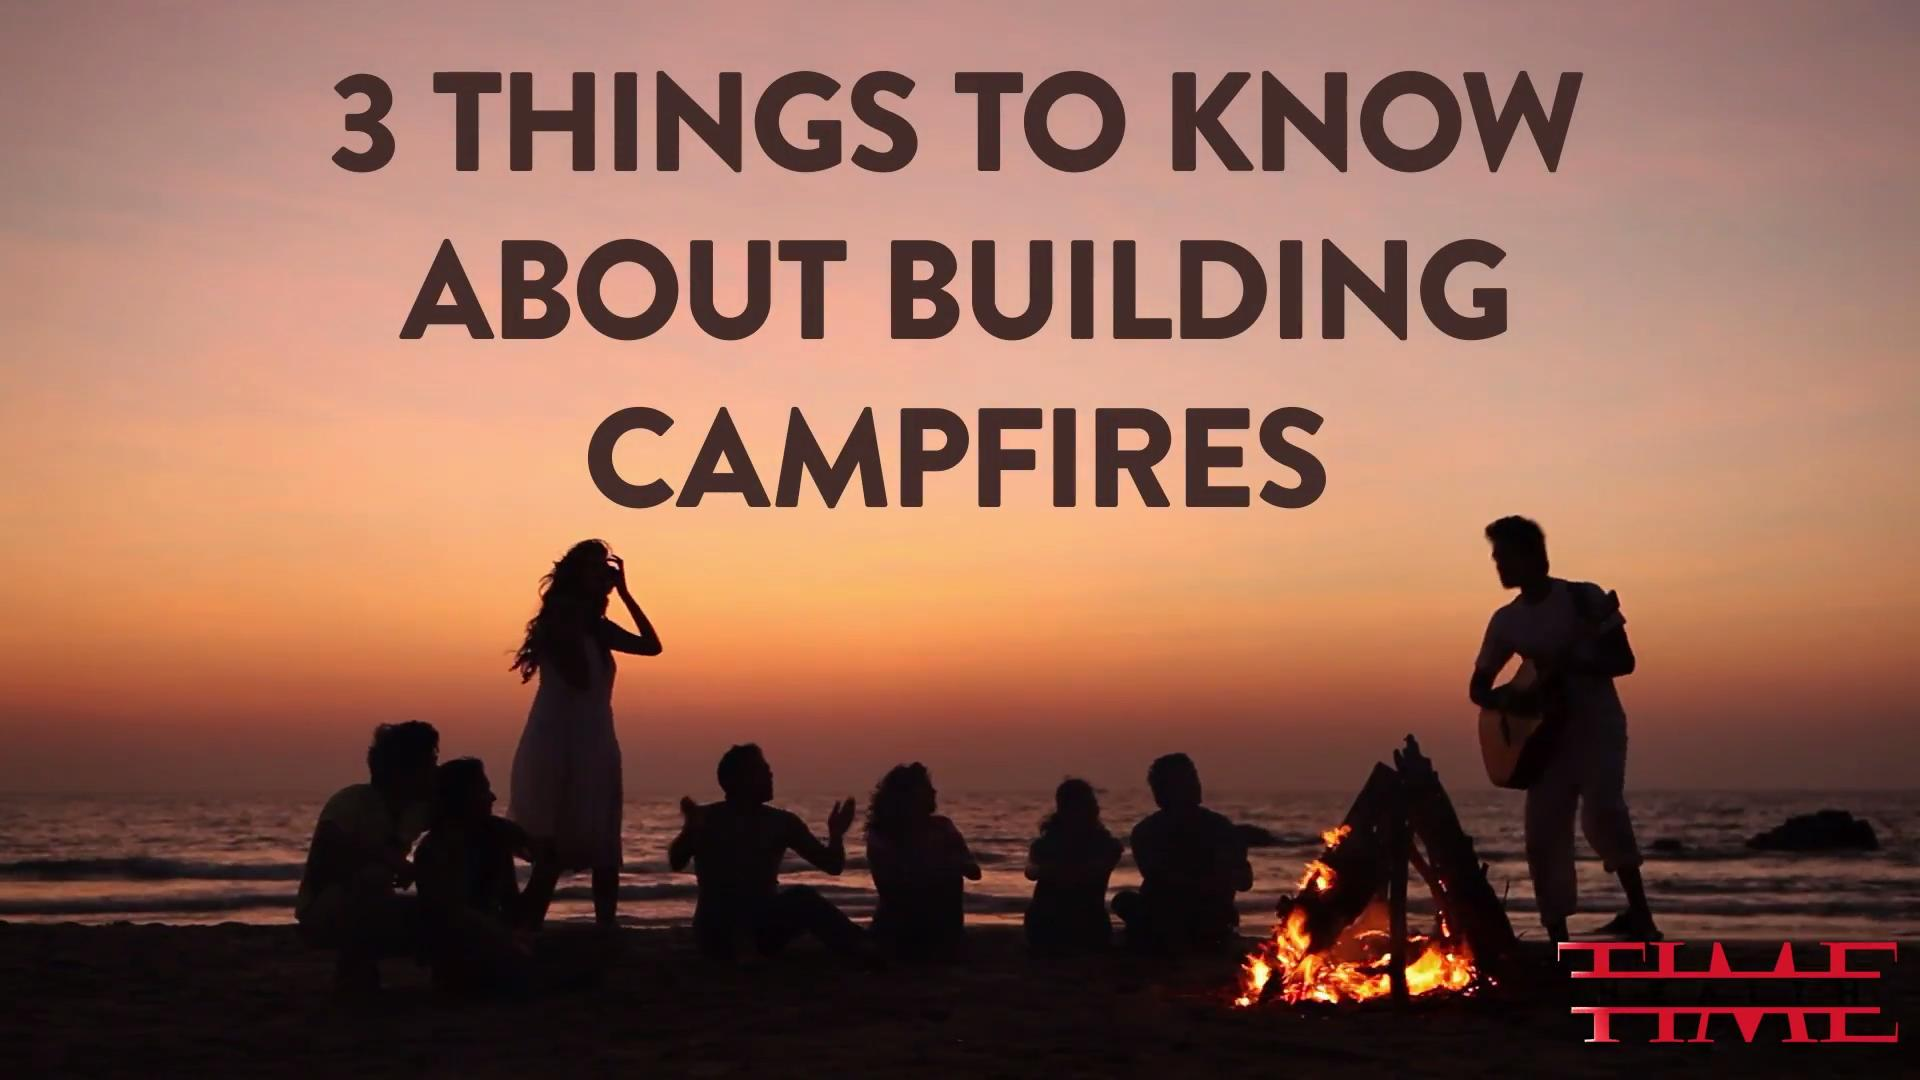 07202017_3 Things To Know About Building Campfires